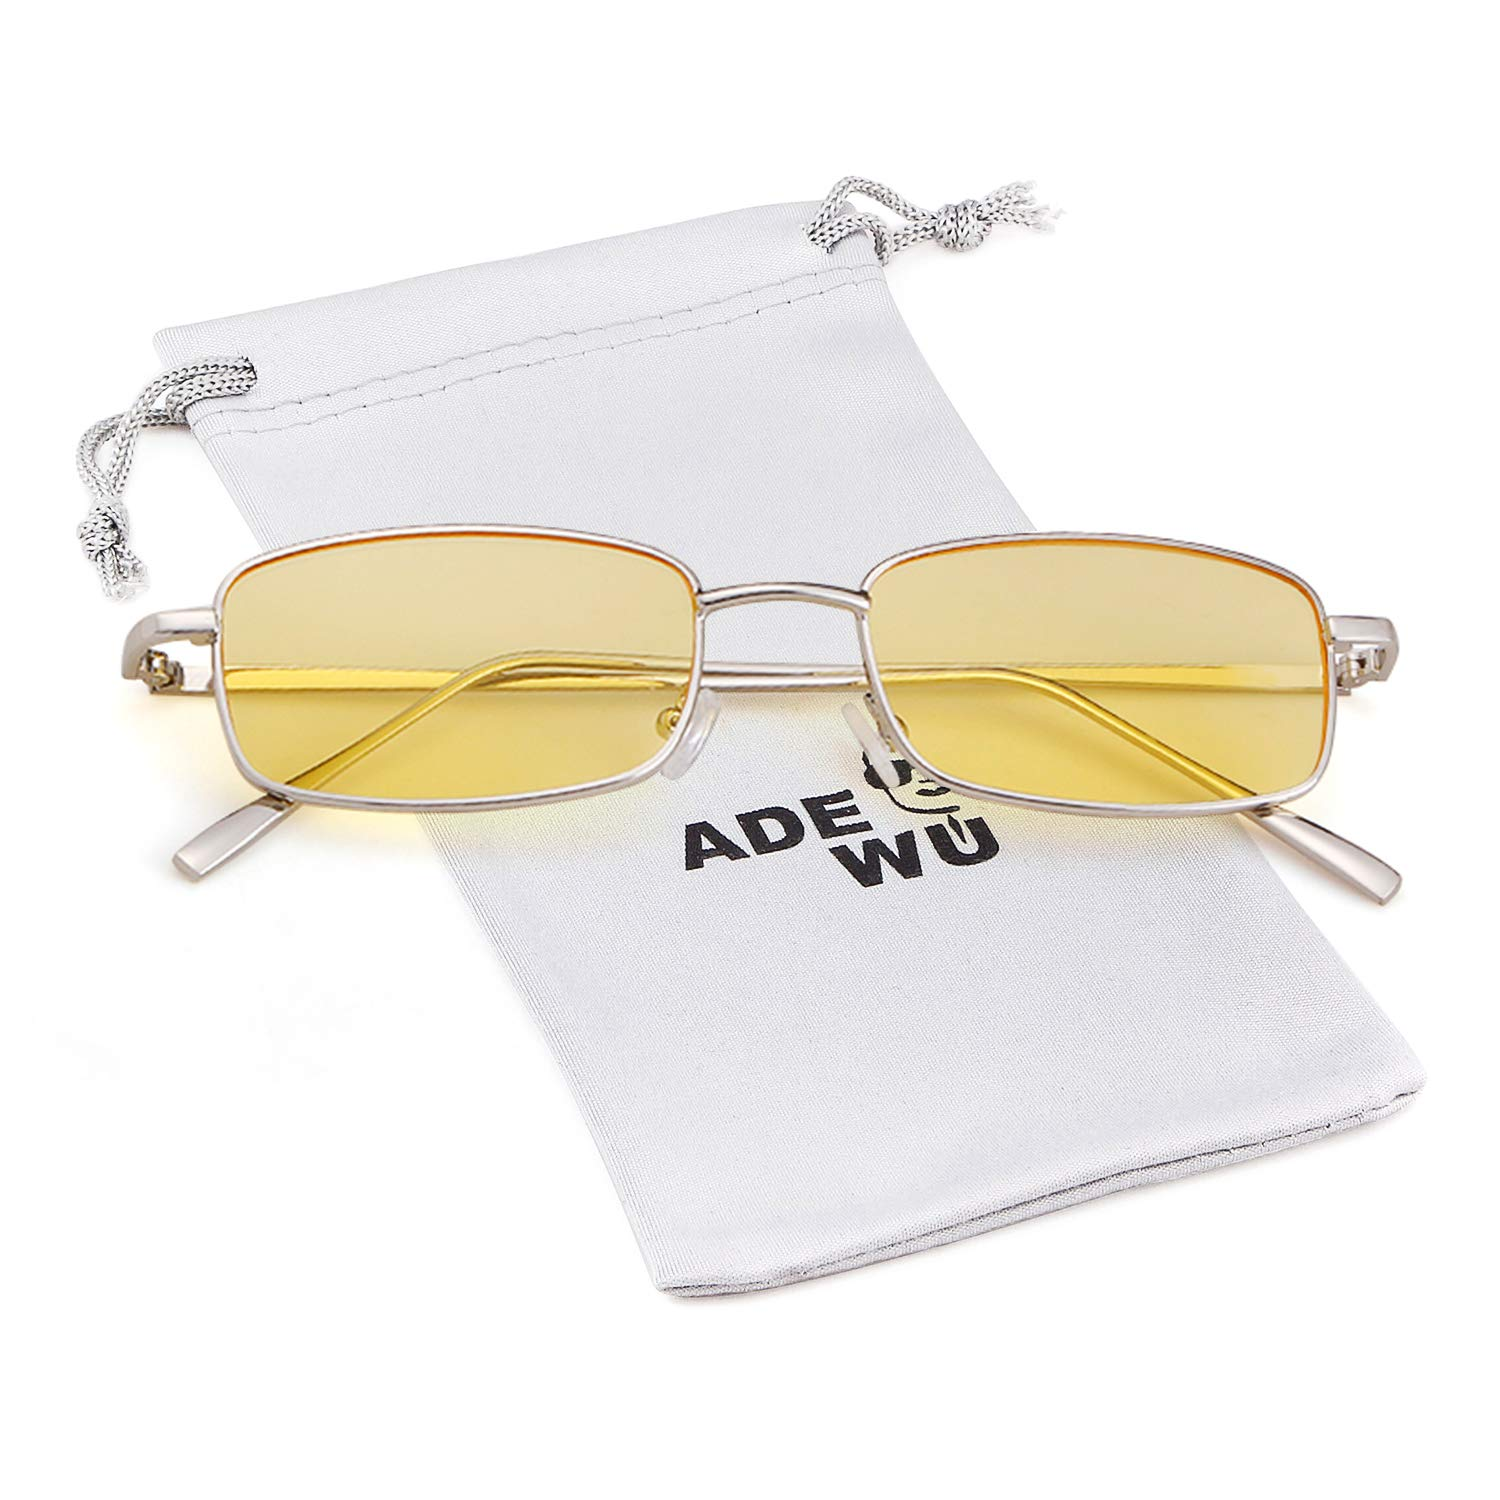 Vintage Steampunk Sunglasses Fashion Metal Frame Clear Lens Shades for Women